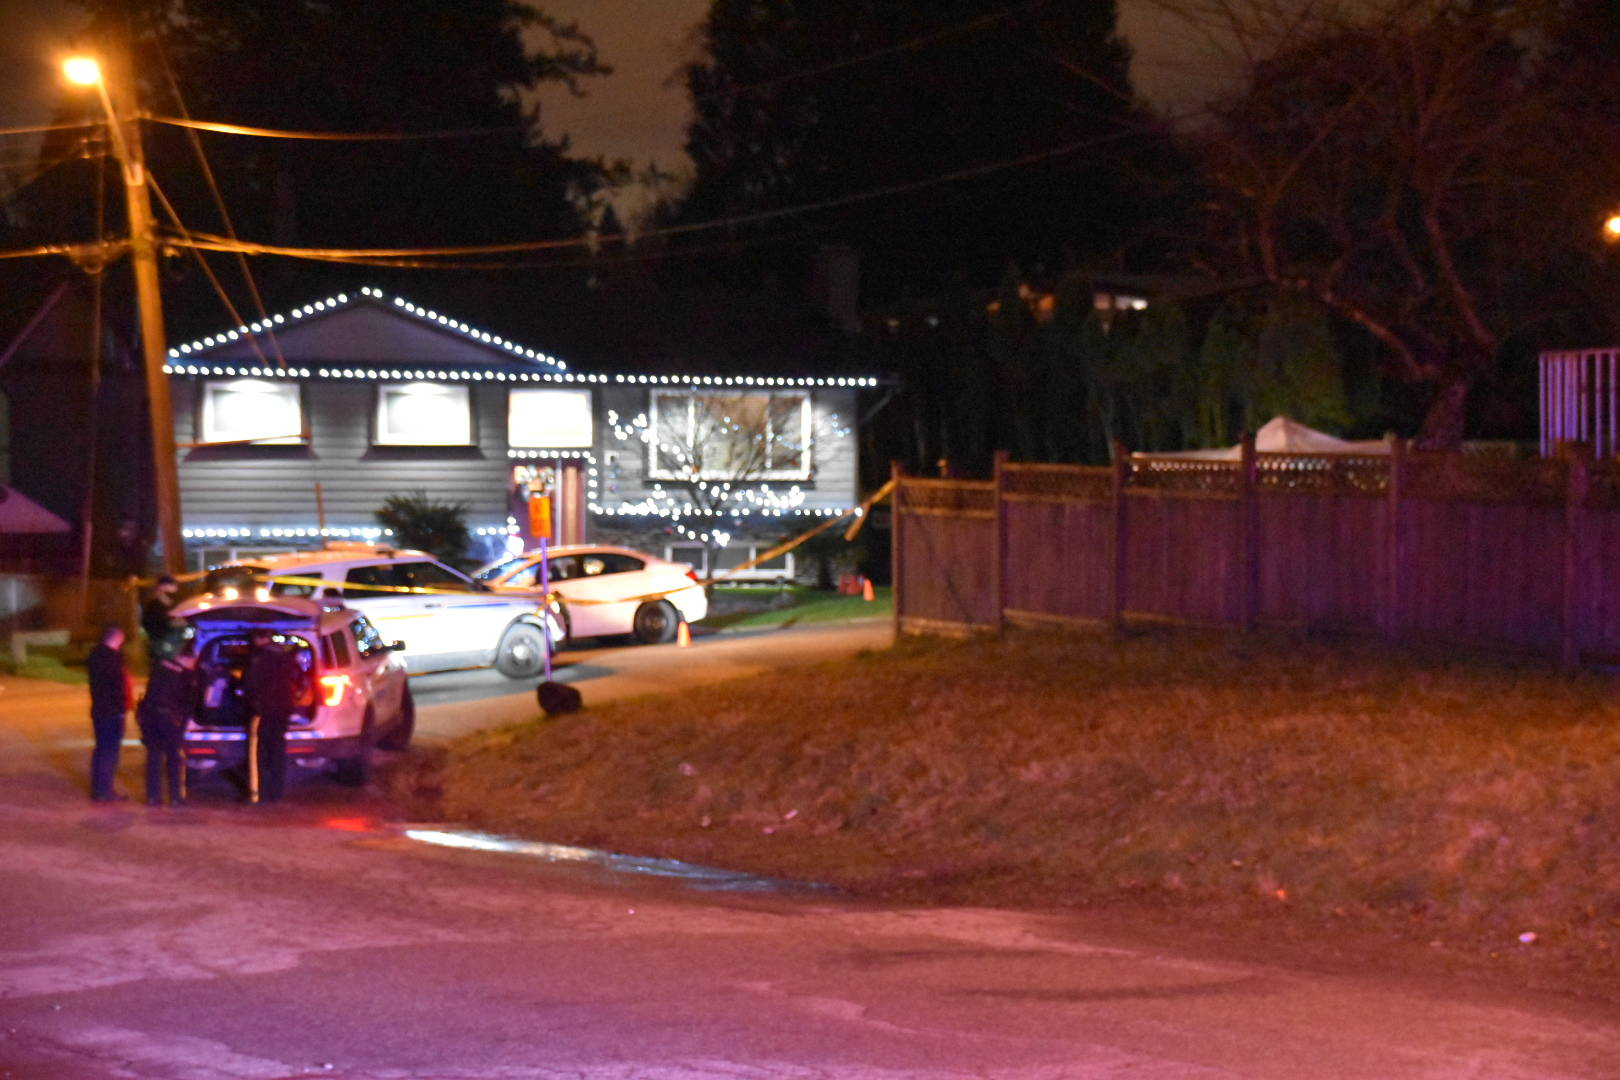 Police on scene of a shooting in the 11000-block of 148A Street in Surrey on Monday, Dec. 28, 2020. A man was shot and killed in a residential neighbourhood. (Photo: Curtis Kreklau)